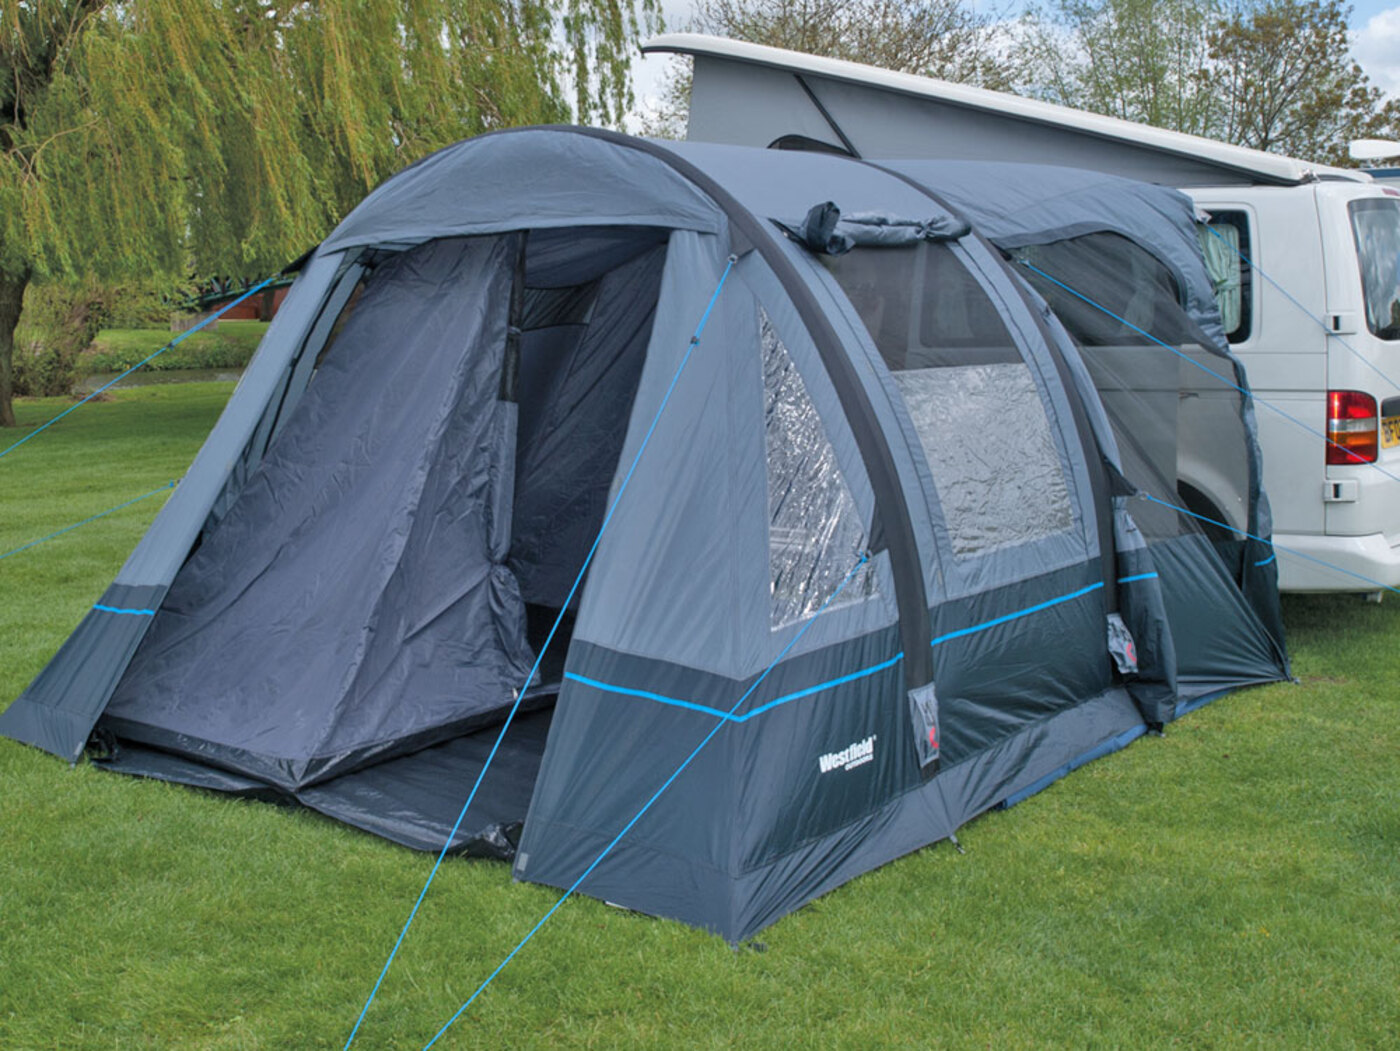 thule omnistor awning instructions